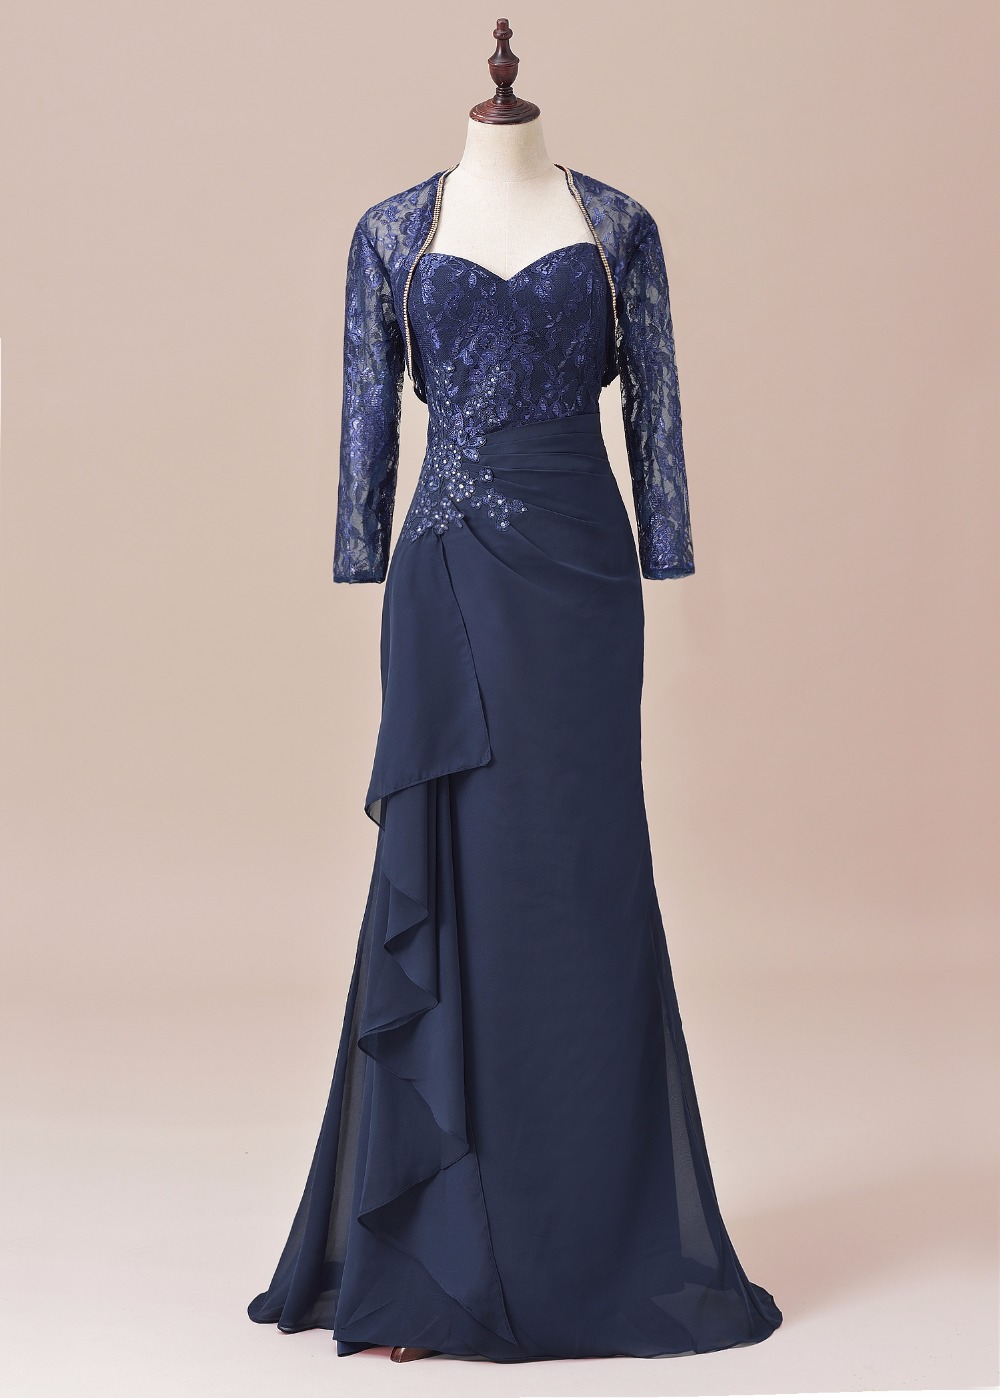 Three Quarters Half Sleeves Lace Formal Gown Mother Of The Bride Groom Dress With Jacket For Wedding Vestido De Festa SLD-M08